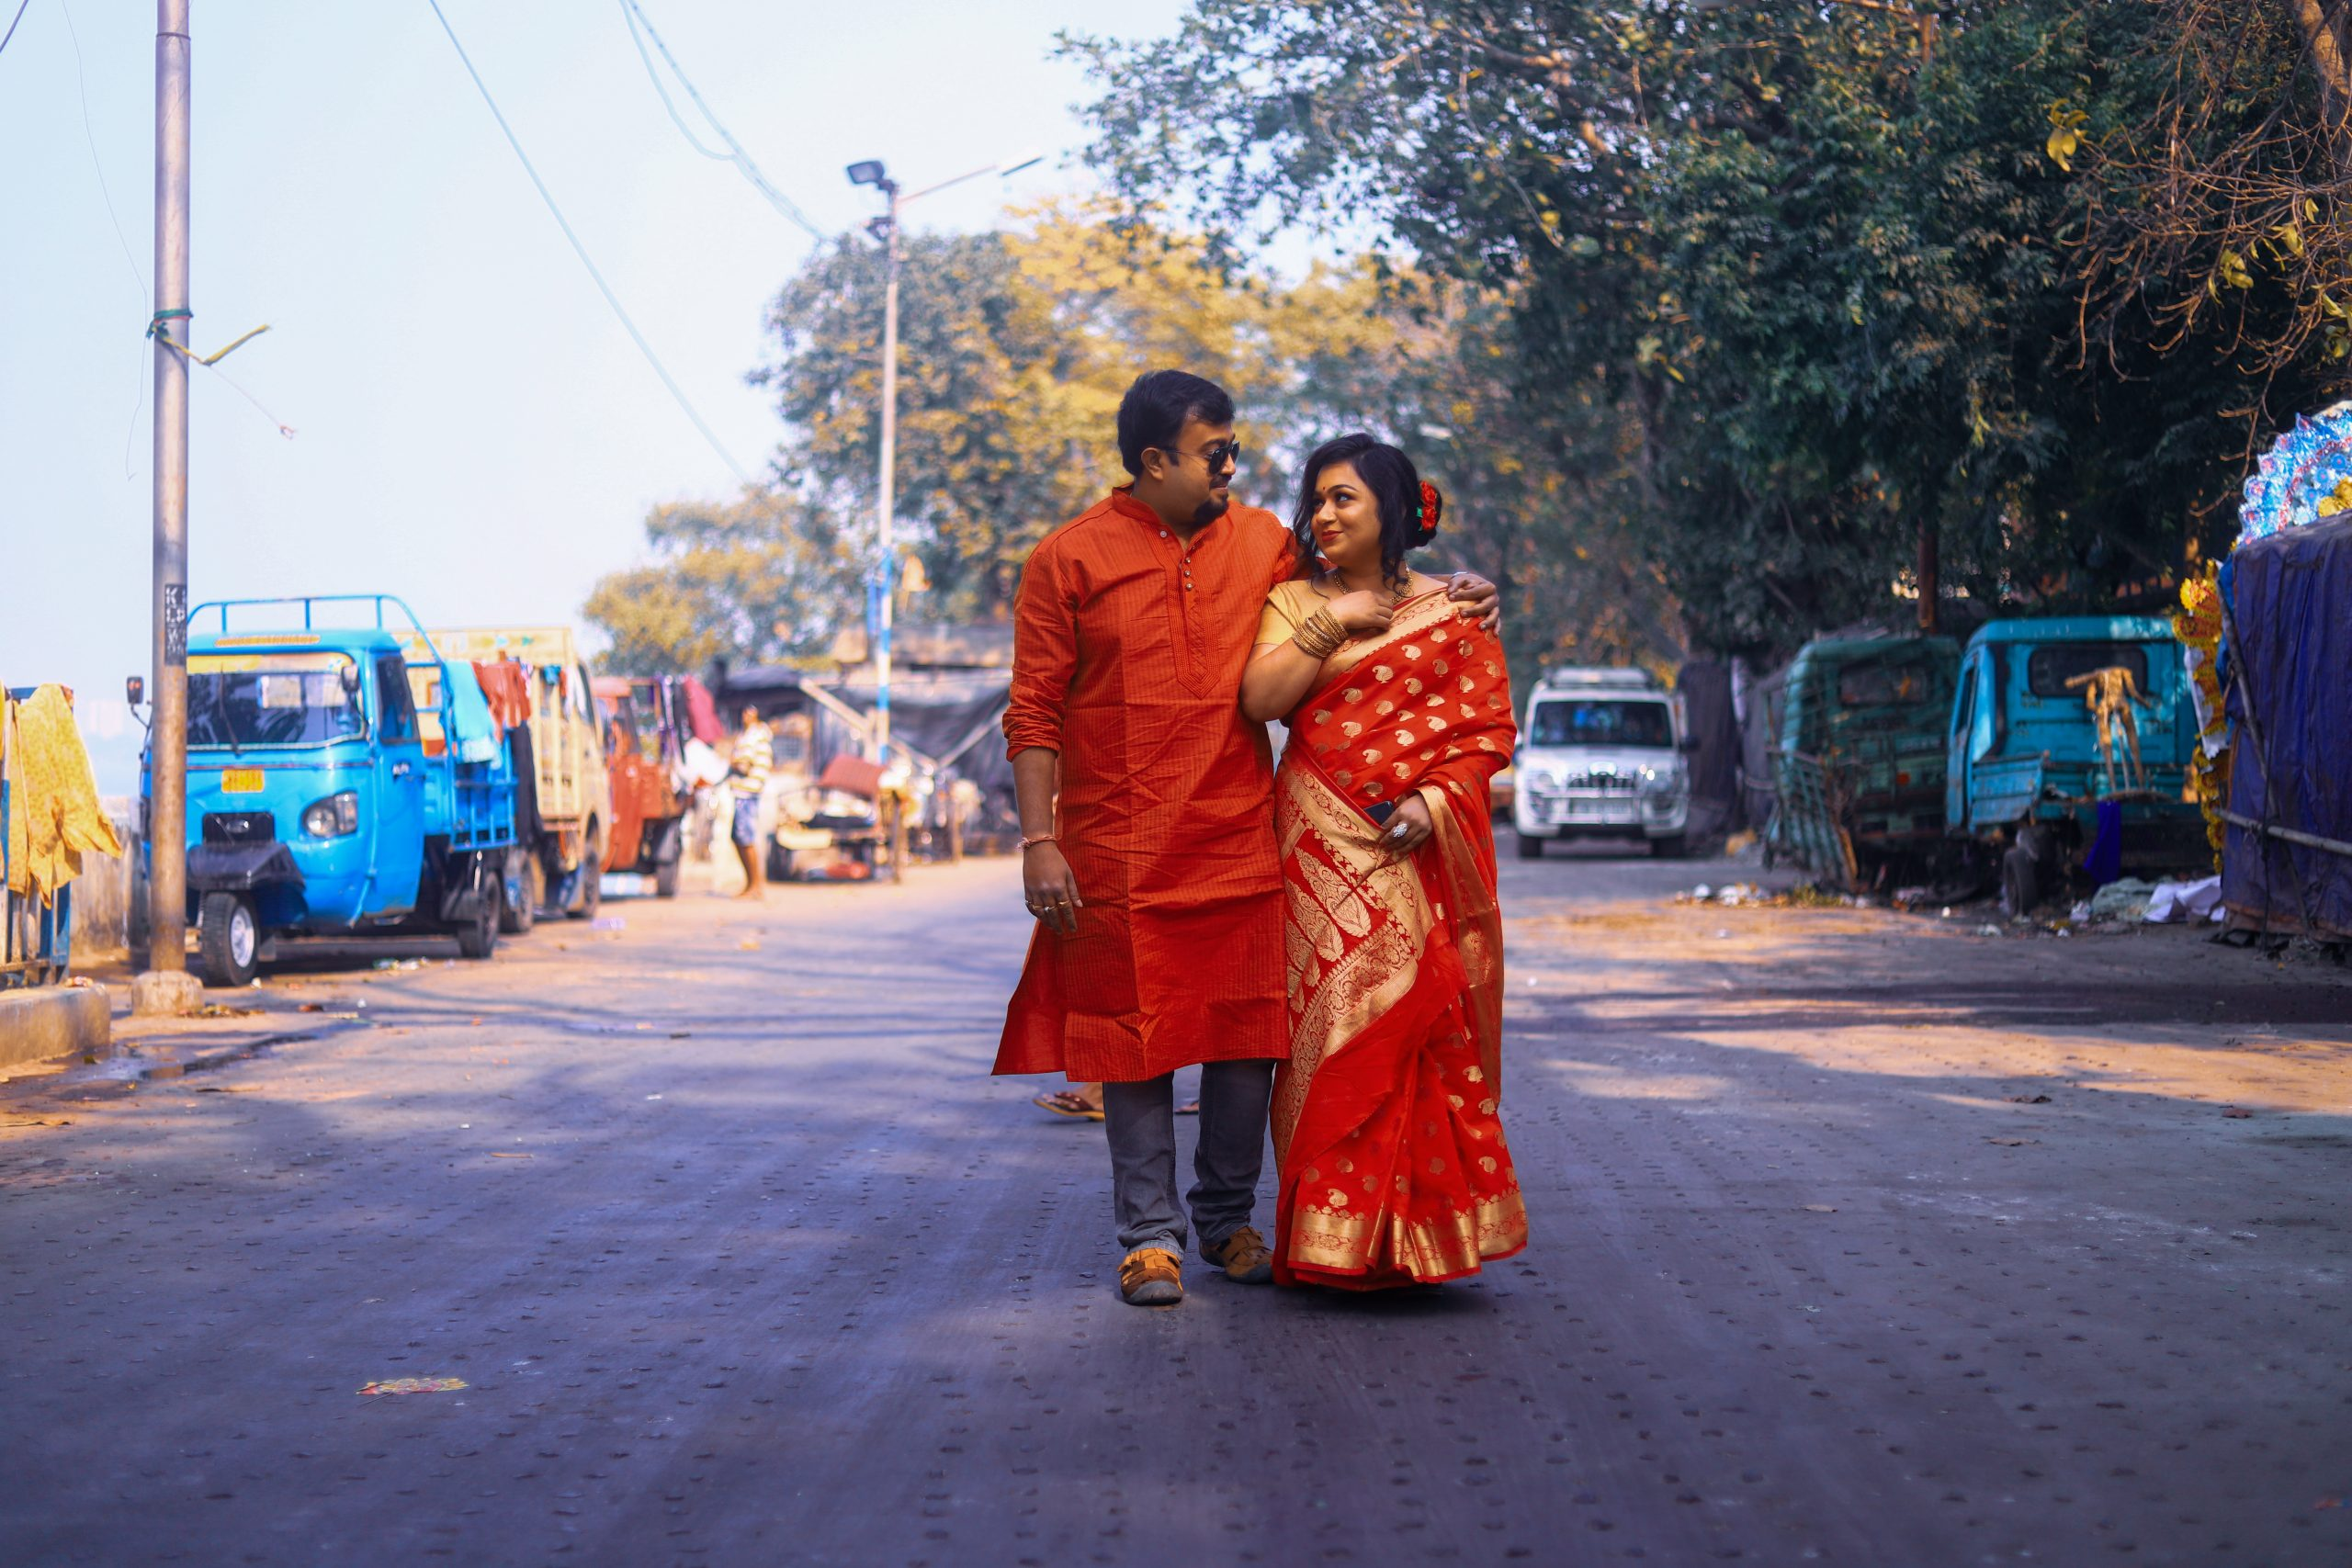 A married couple walking on a road